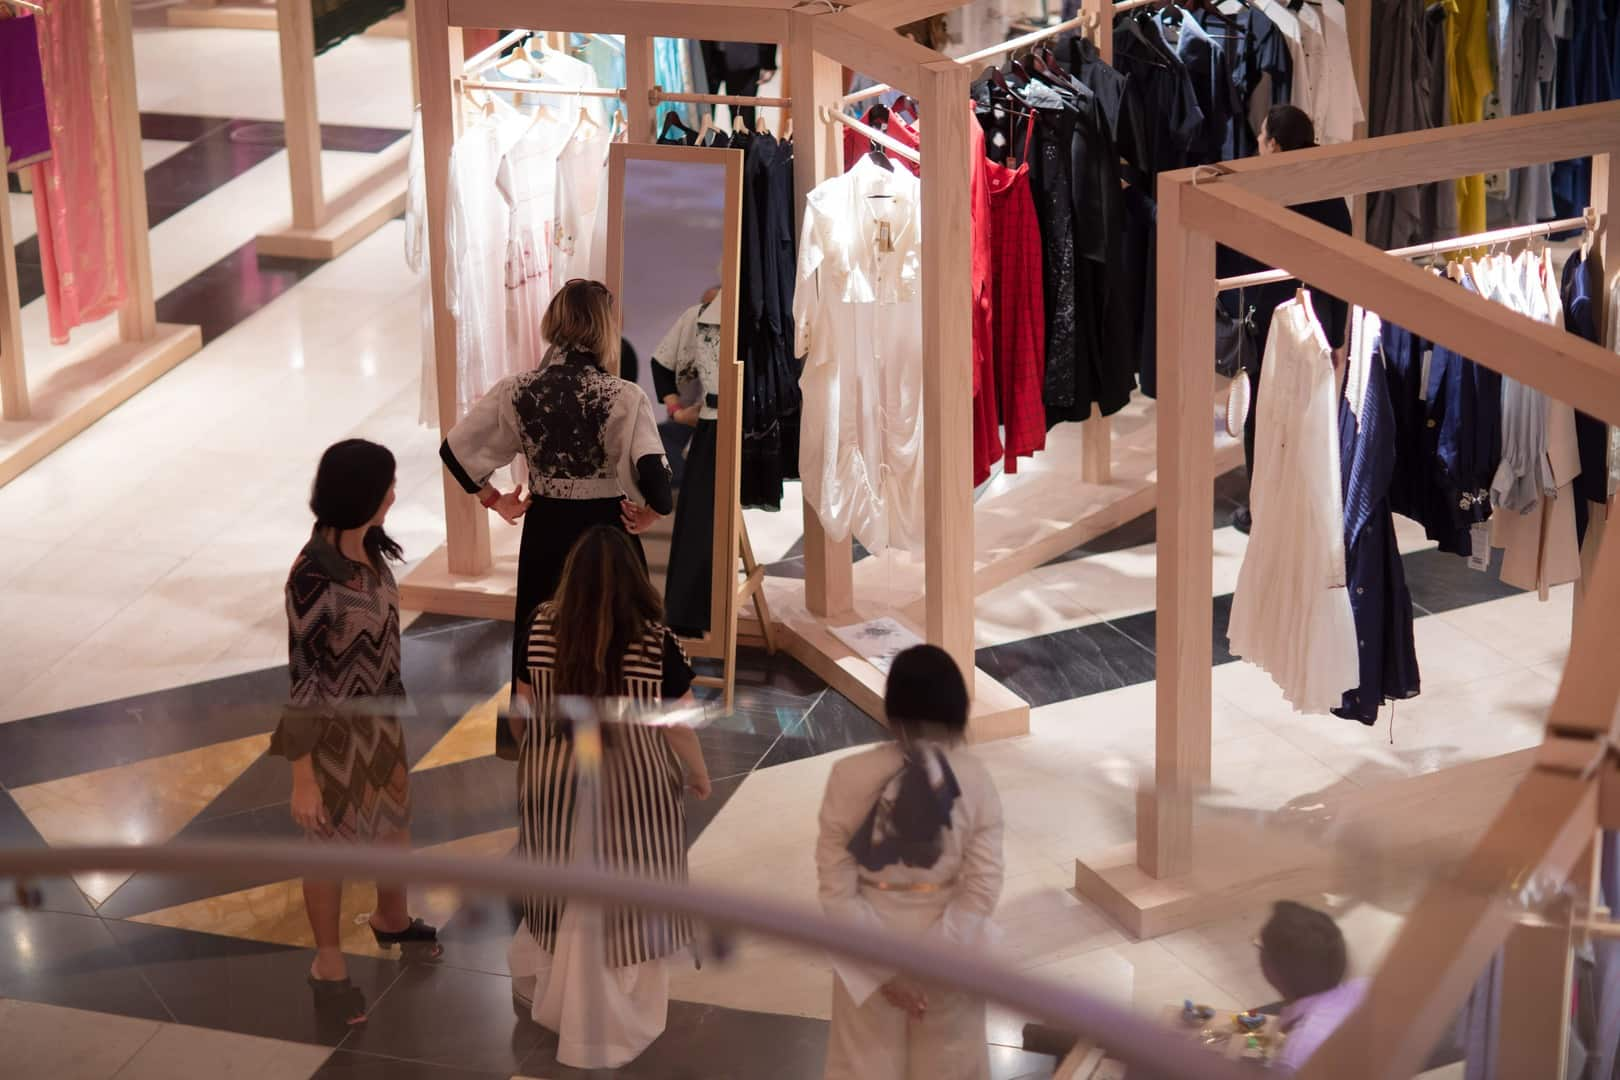 /img/events/yoc/media/market-for-ethical-textile-and-fashion-brands-4.jpg